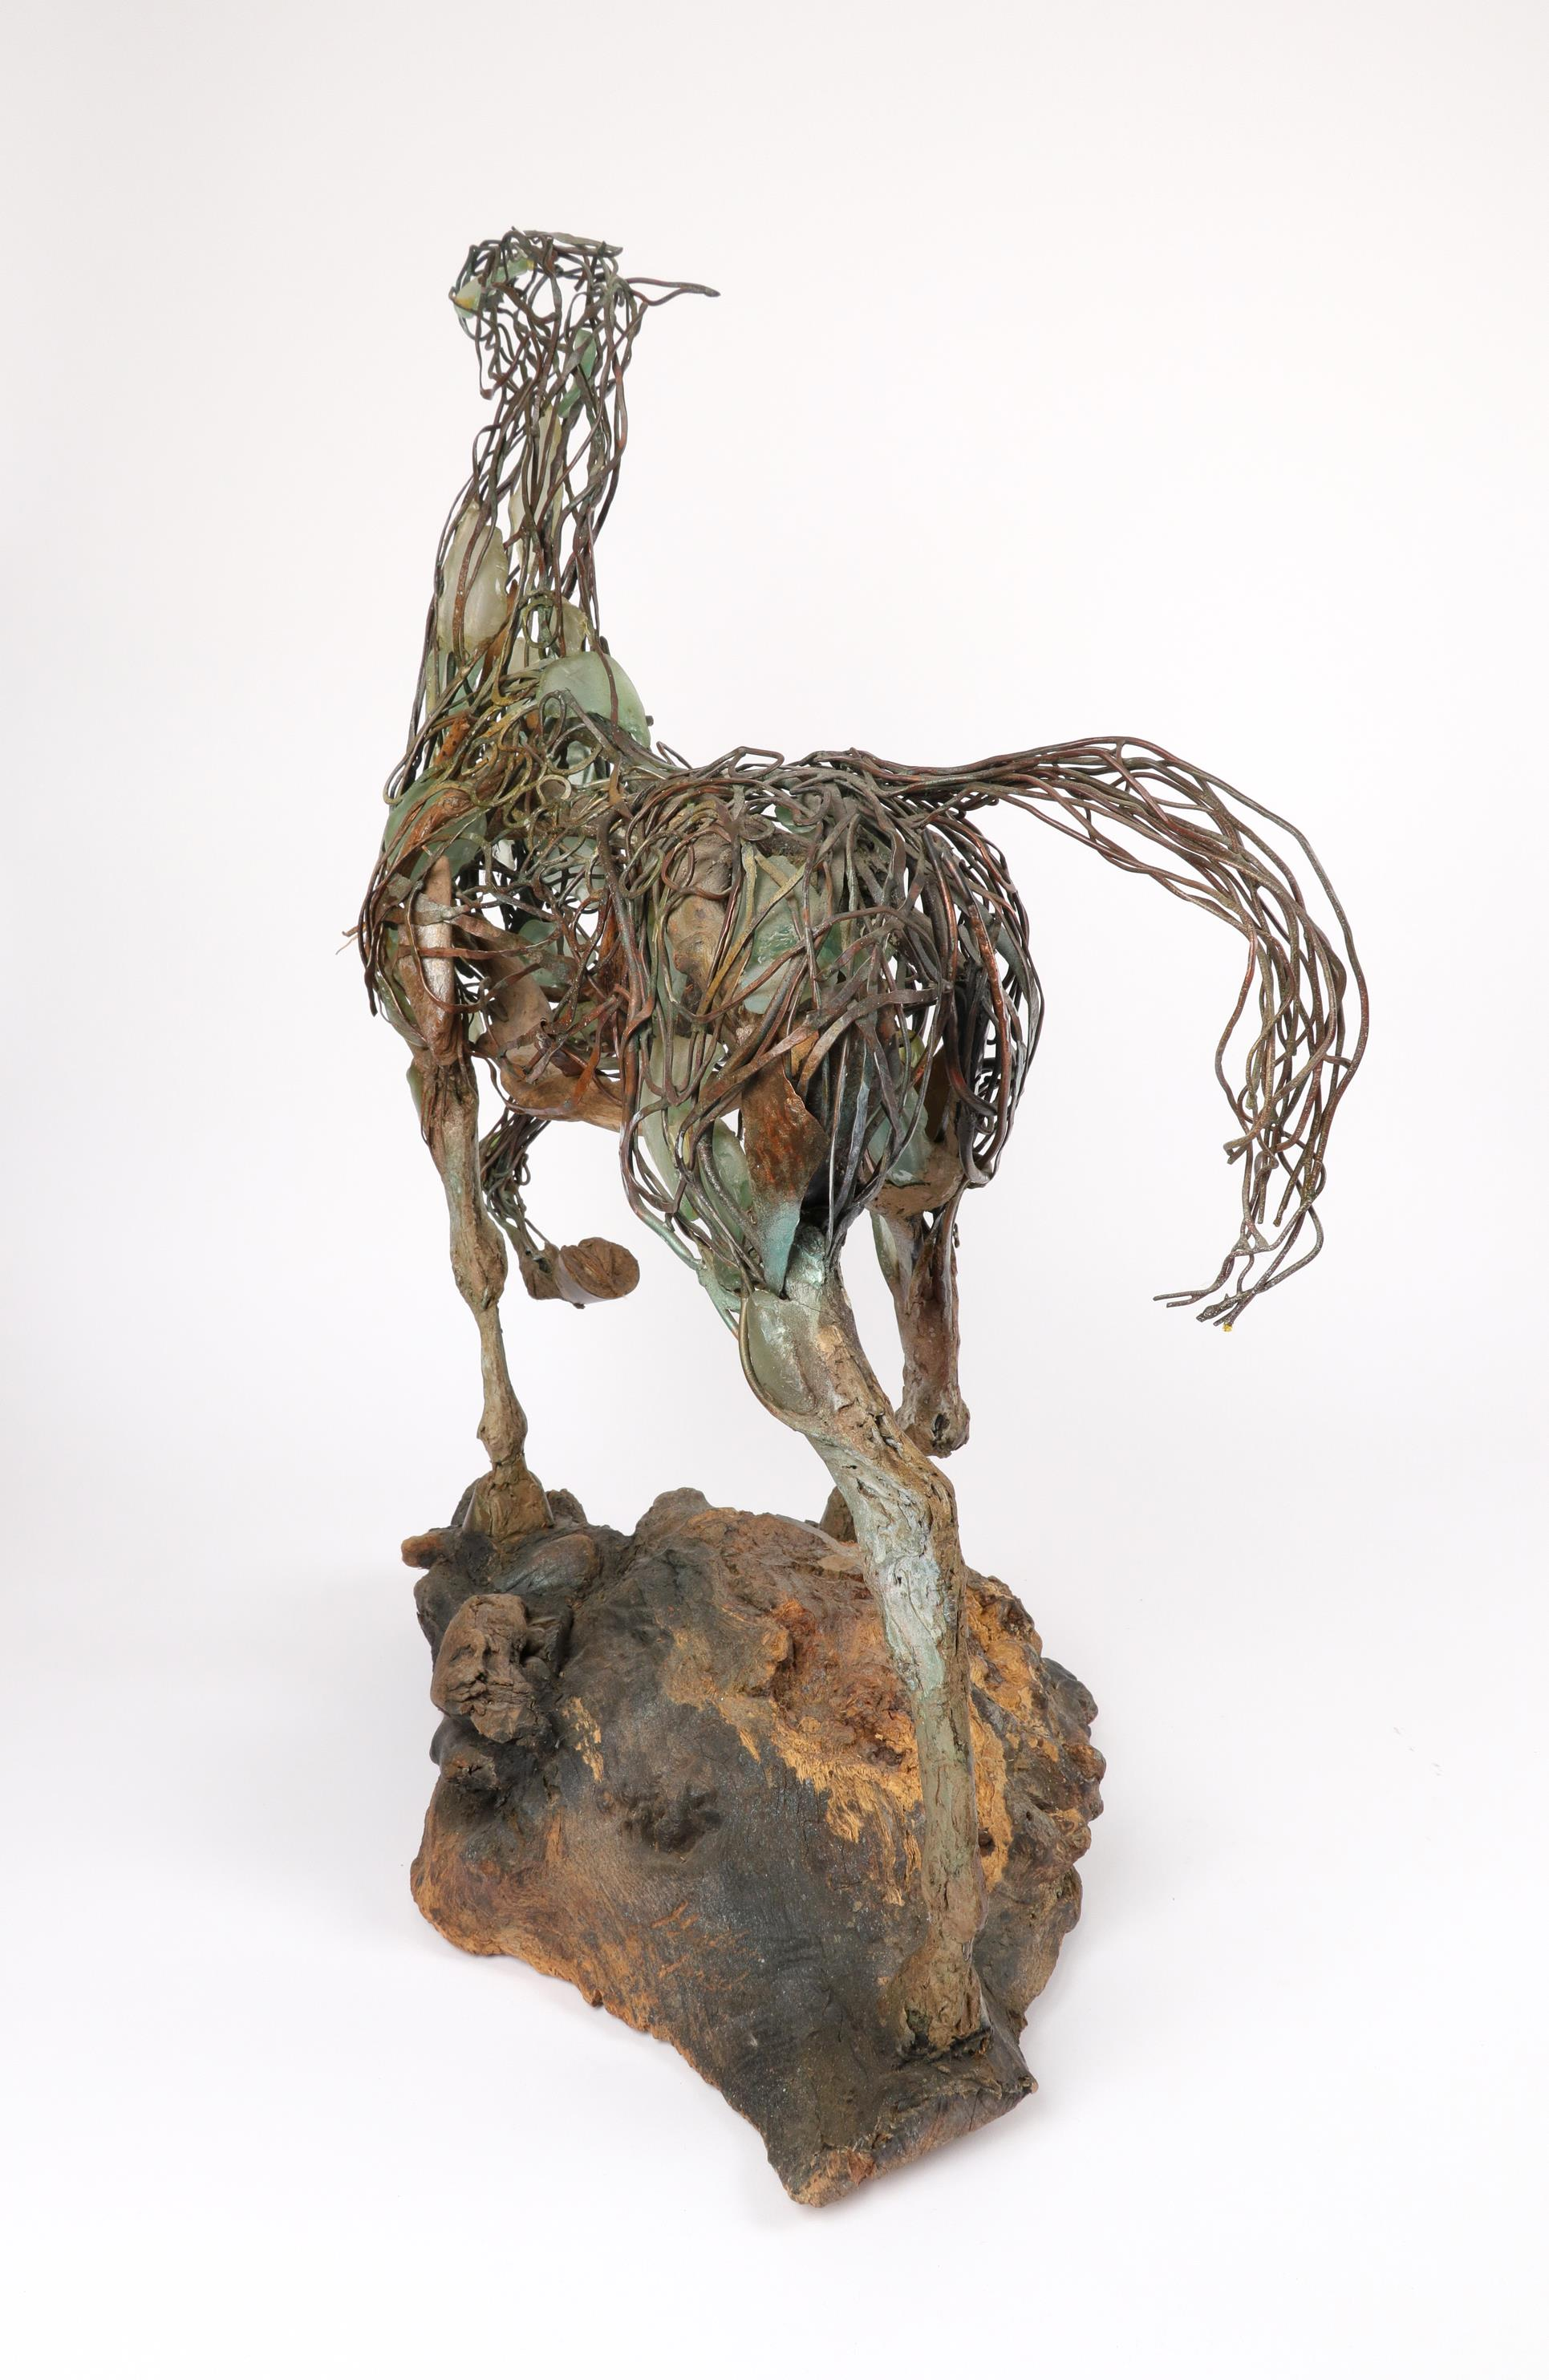 ‡Heather Jansch (b.1948) Neptune Signed Heather Jansch (to inside of back left leg) Copper wire, - Image 3 of 4